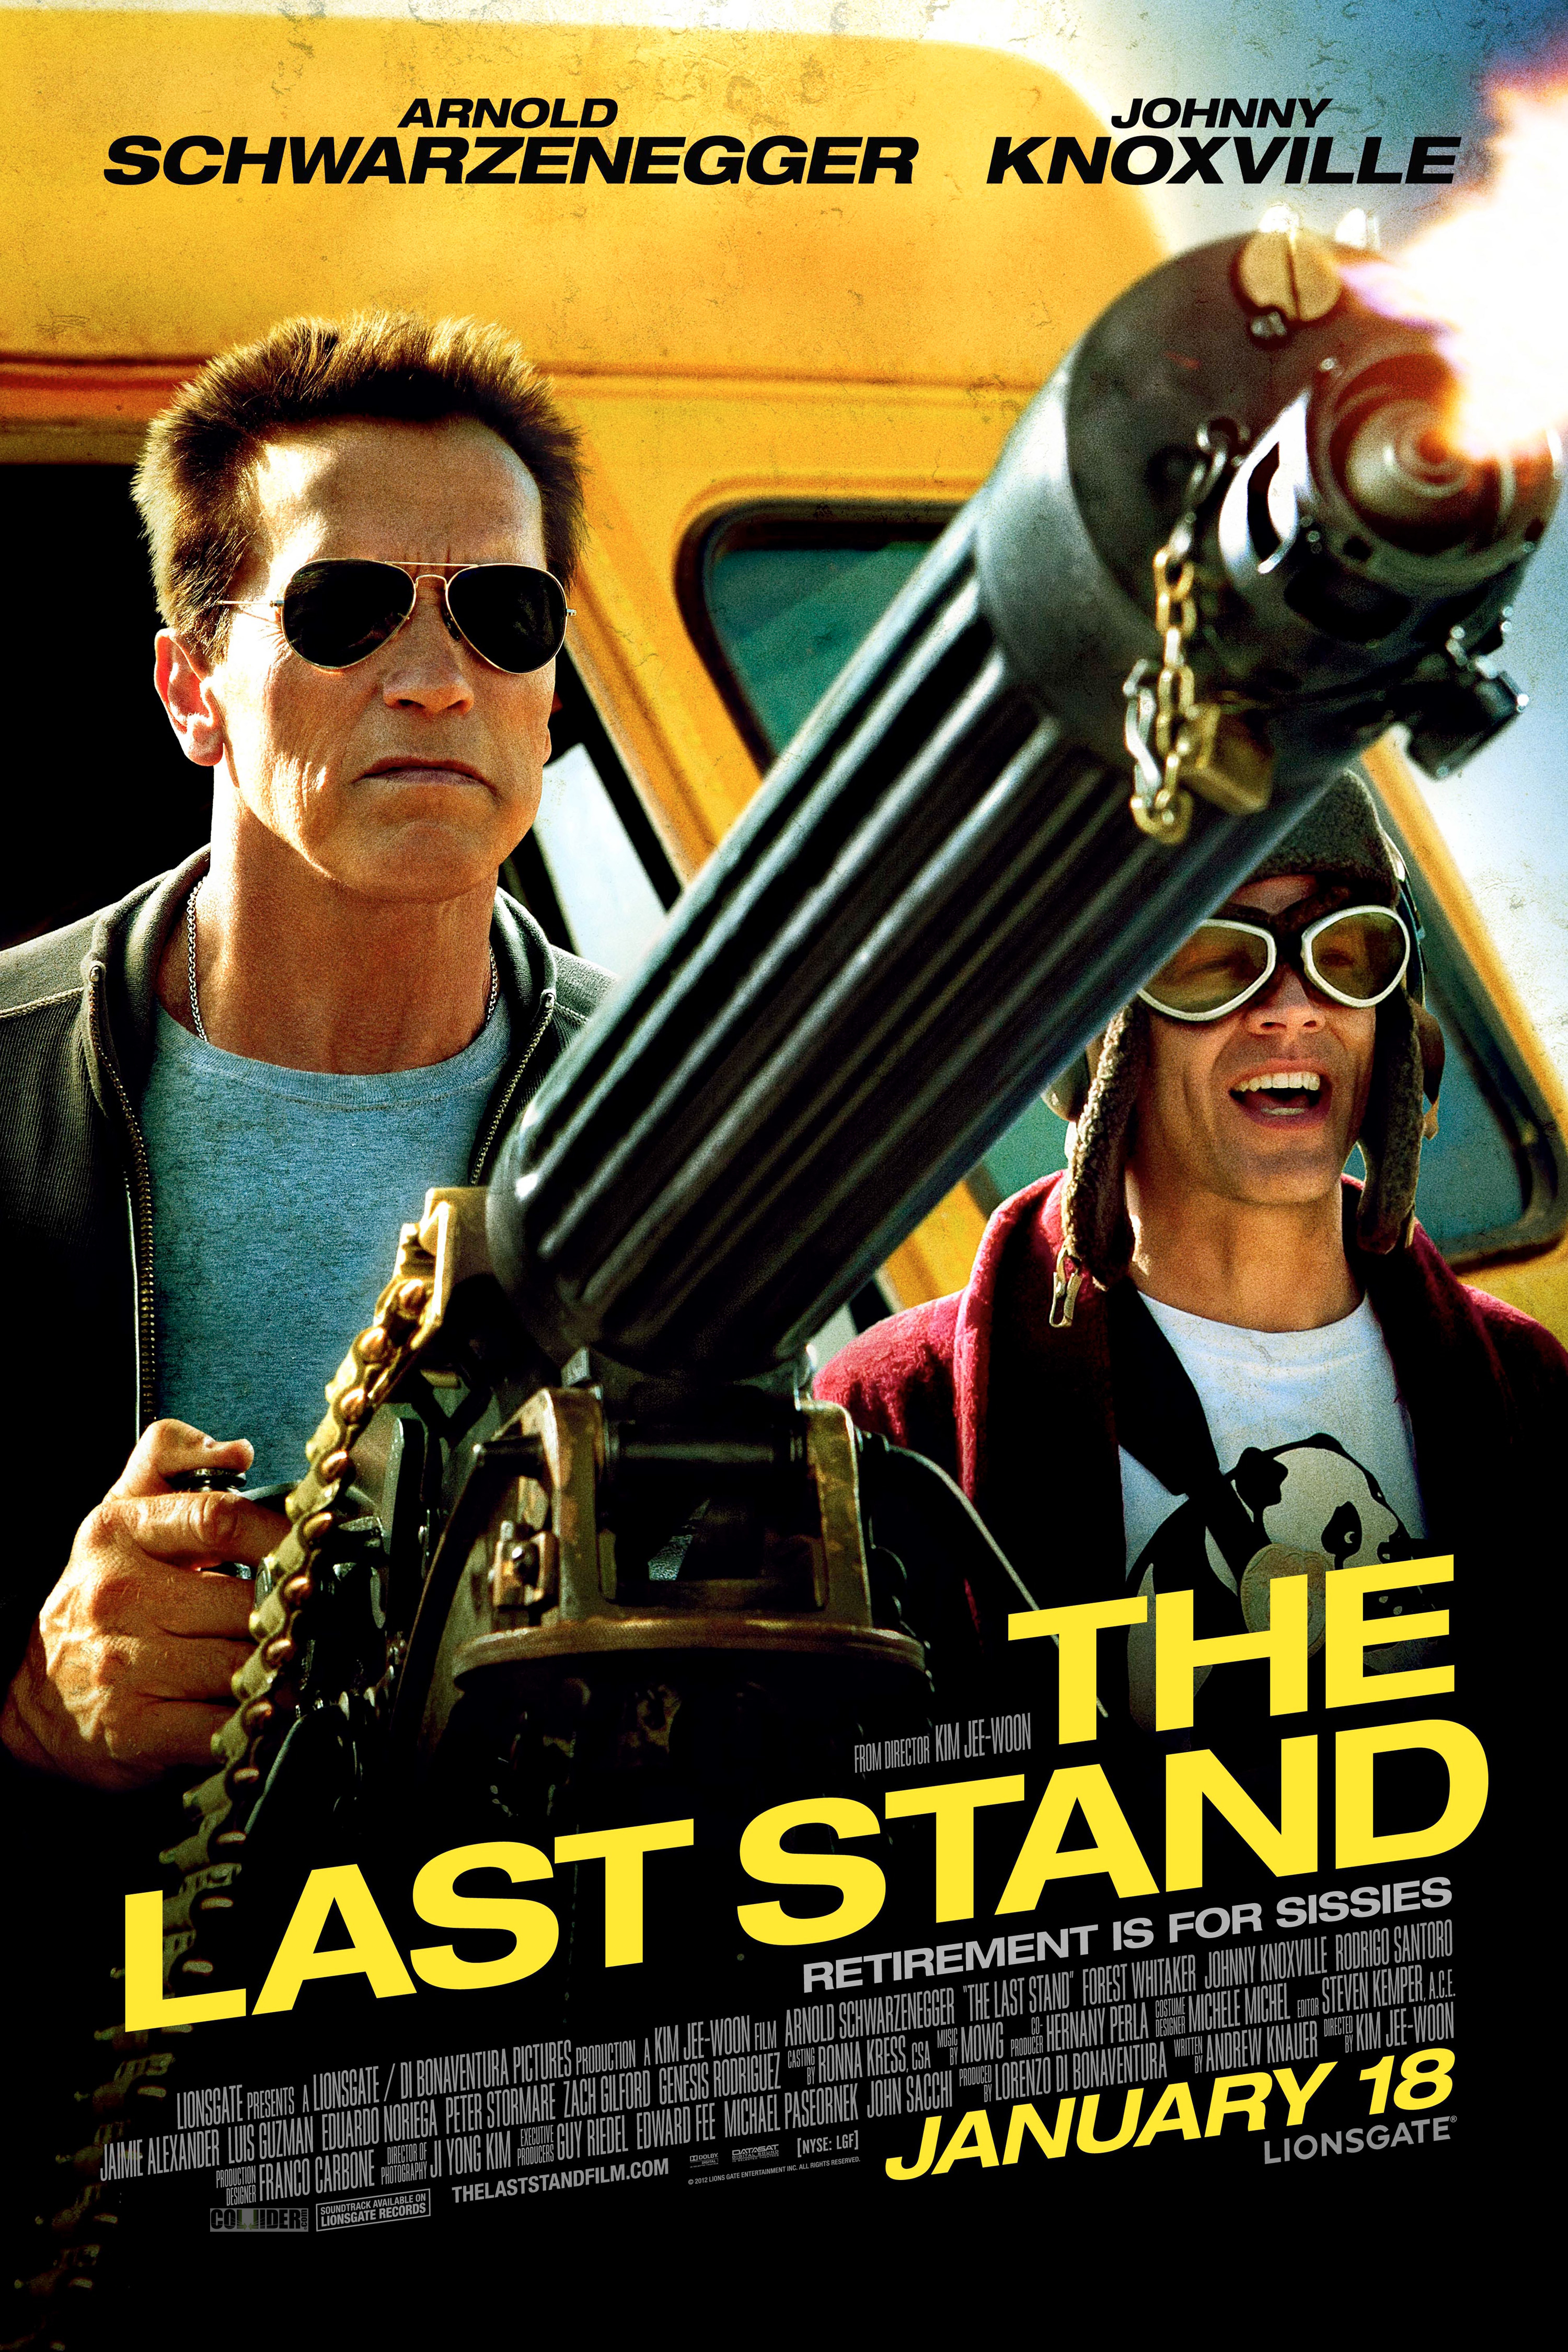 The Last Stand - Movie Poster #3 (Original)